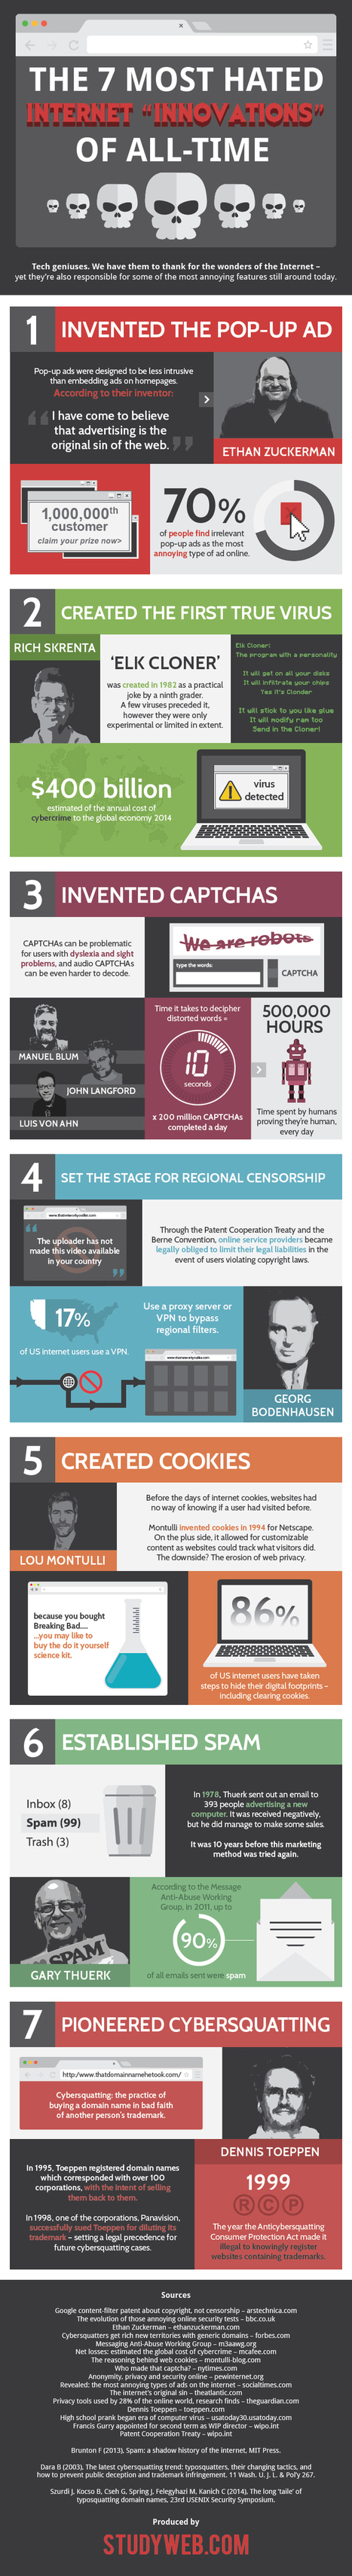 """The 7 Most Hated Internet """"Innovations"""" of All-Time   infographics   Scoop.it"""